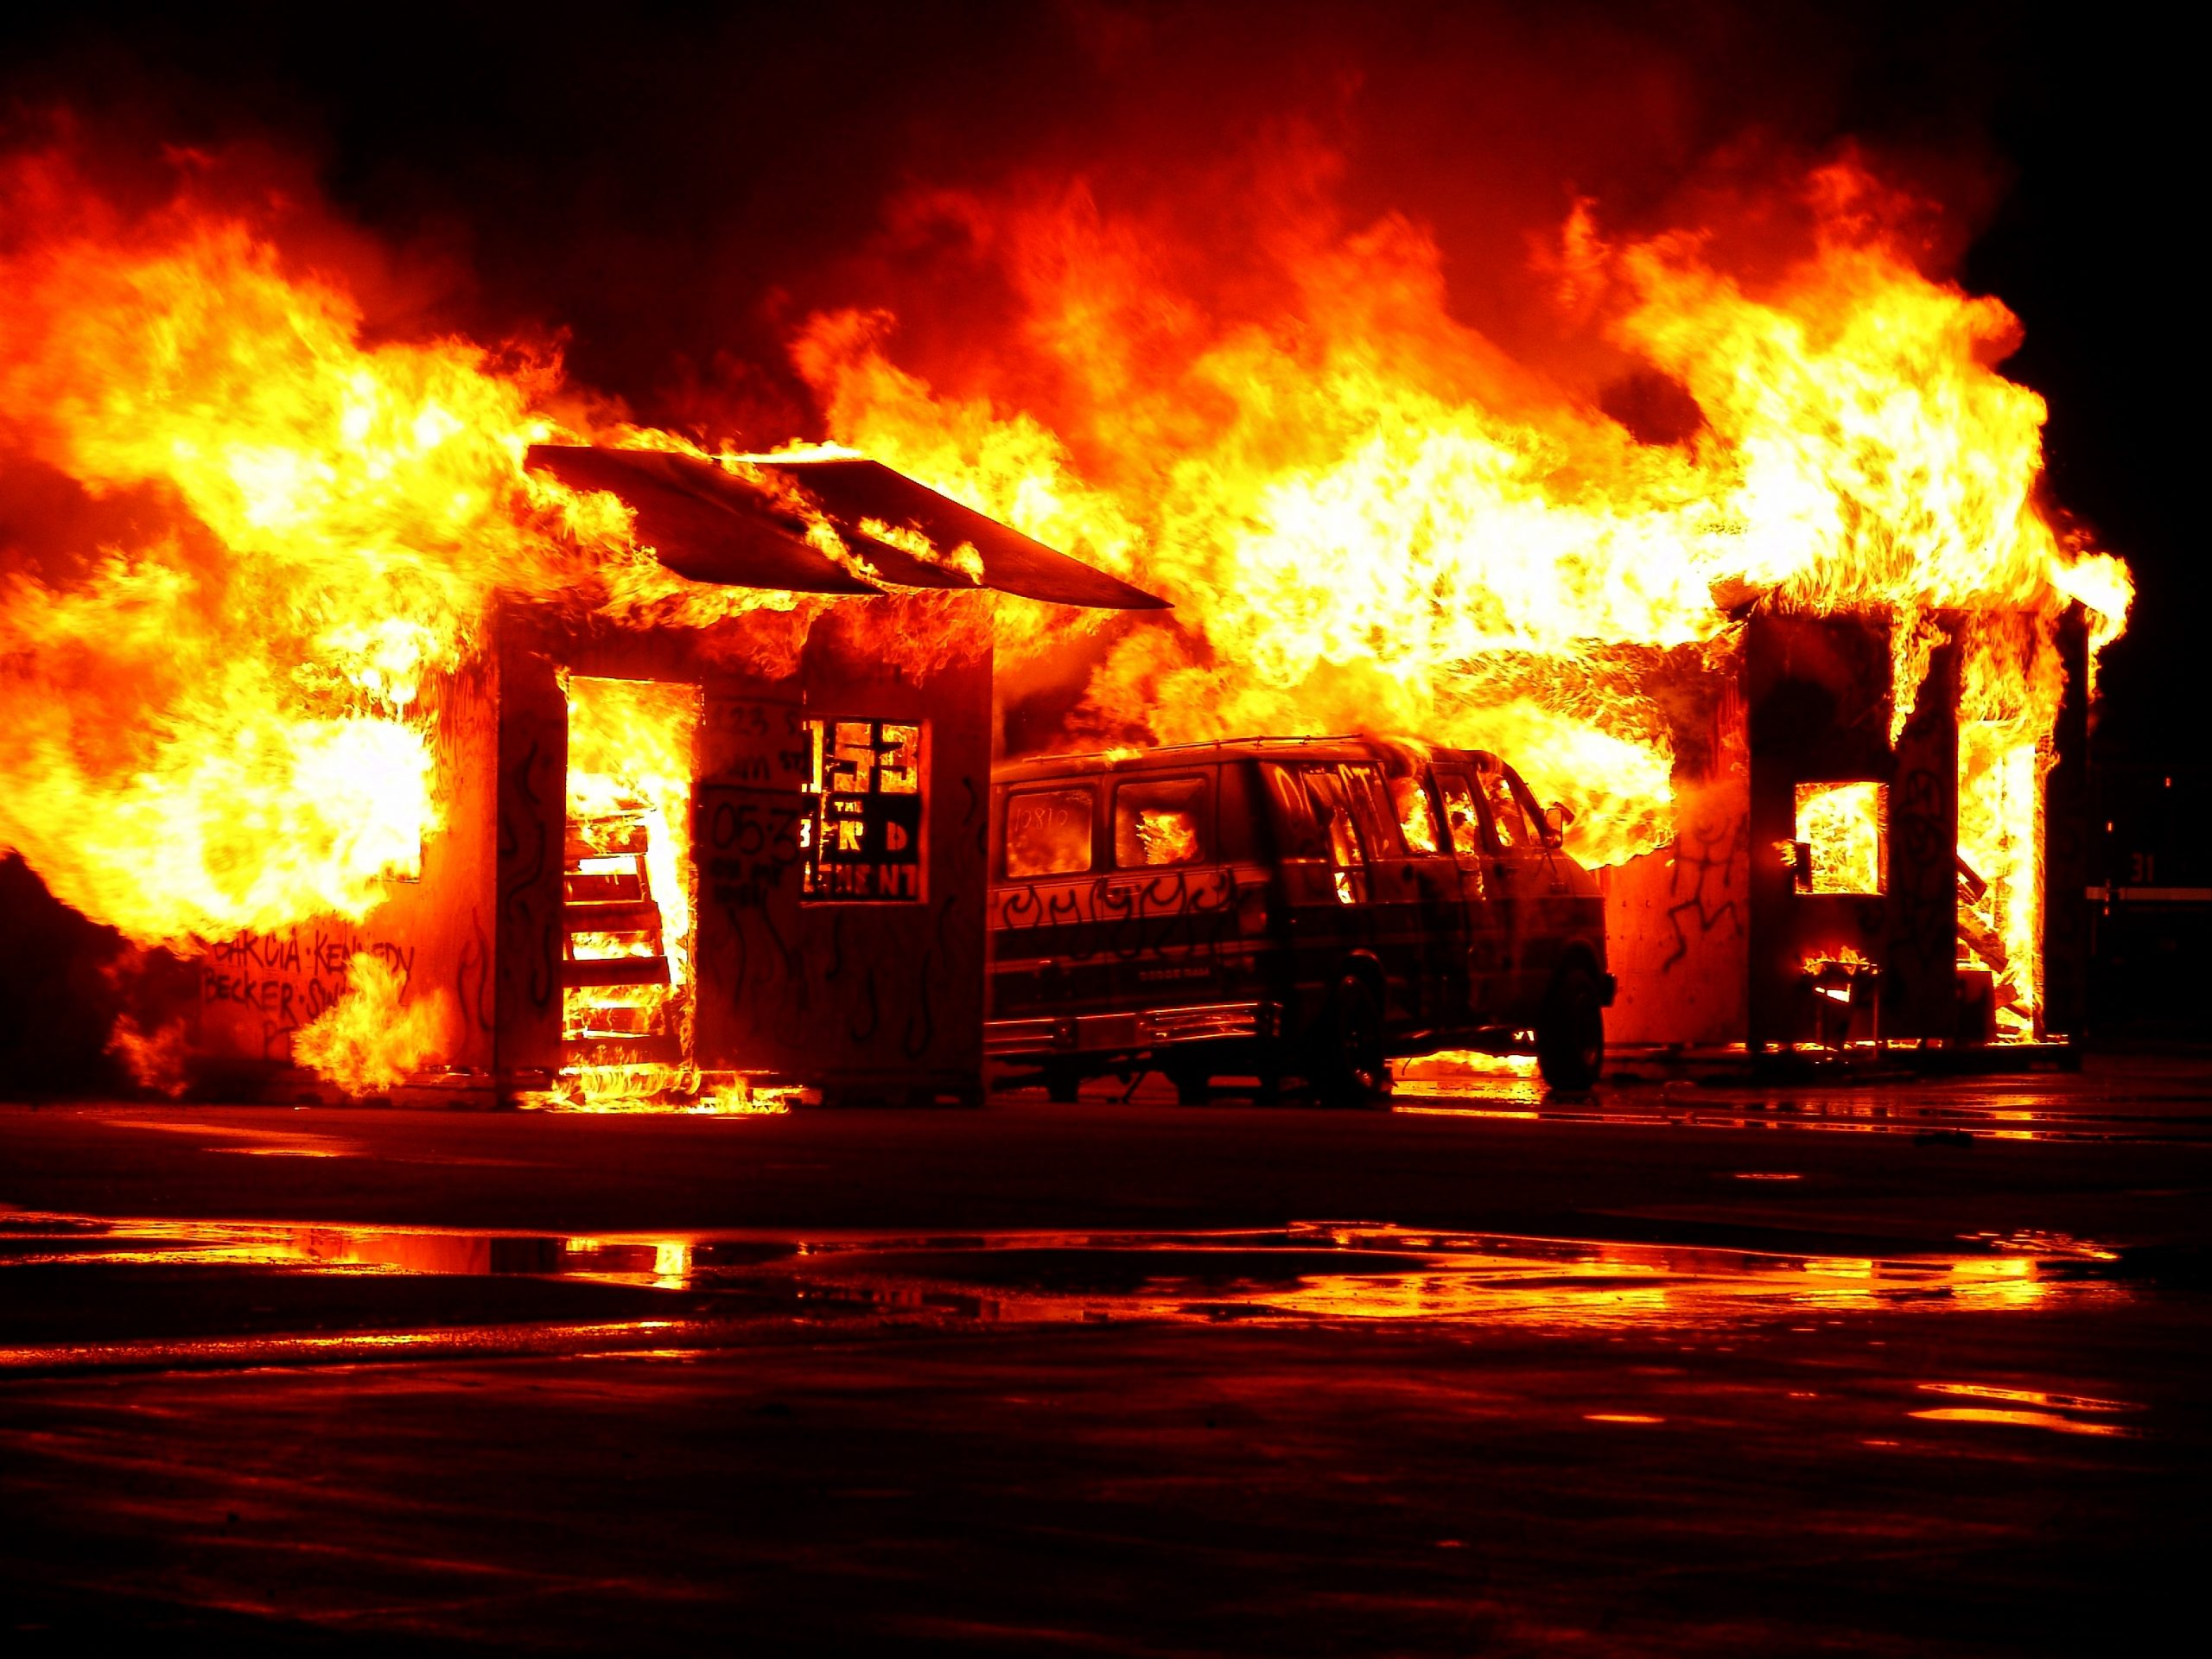 Image of care and building burning for the blog about keeping going when you are going through hell